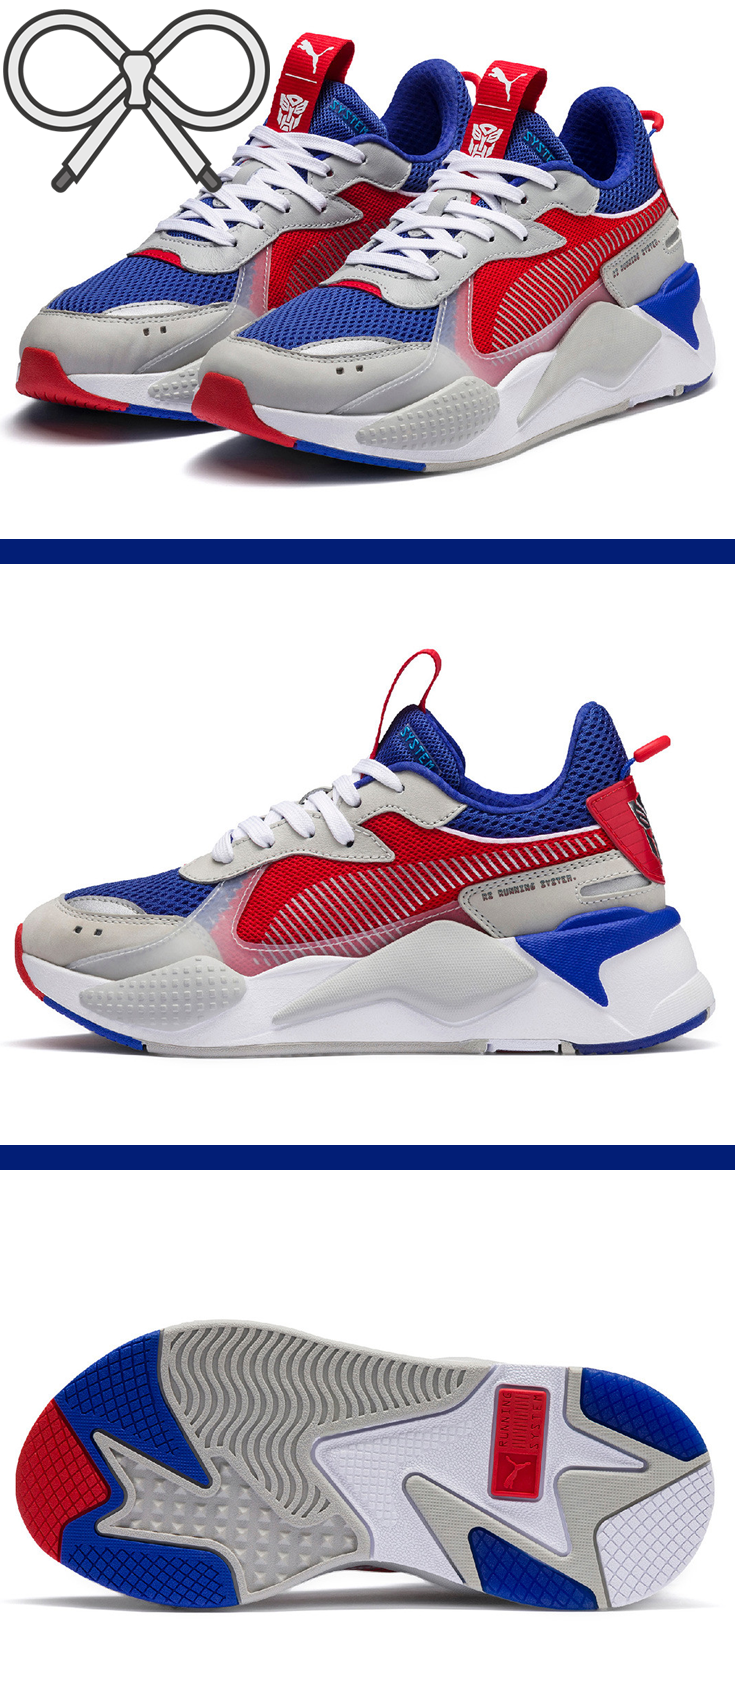 super popular f3582 a2faf Part of the Puma x Transformers collaboration hitting shelves in  NovemberDecember.